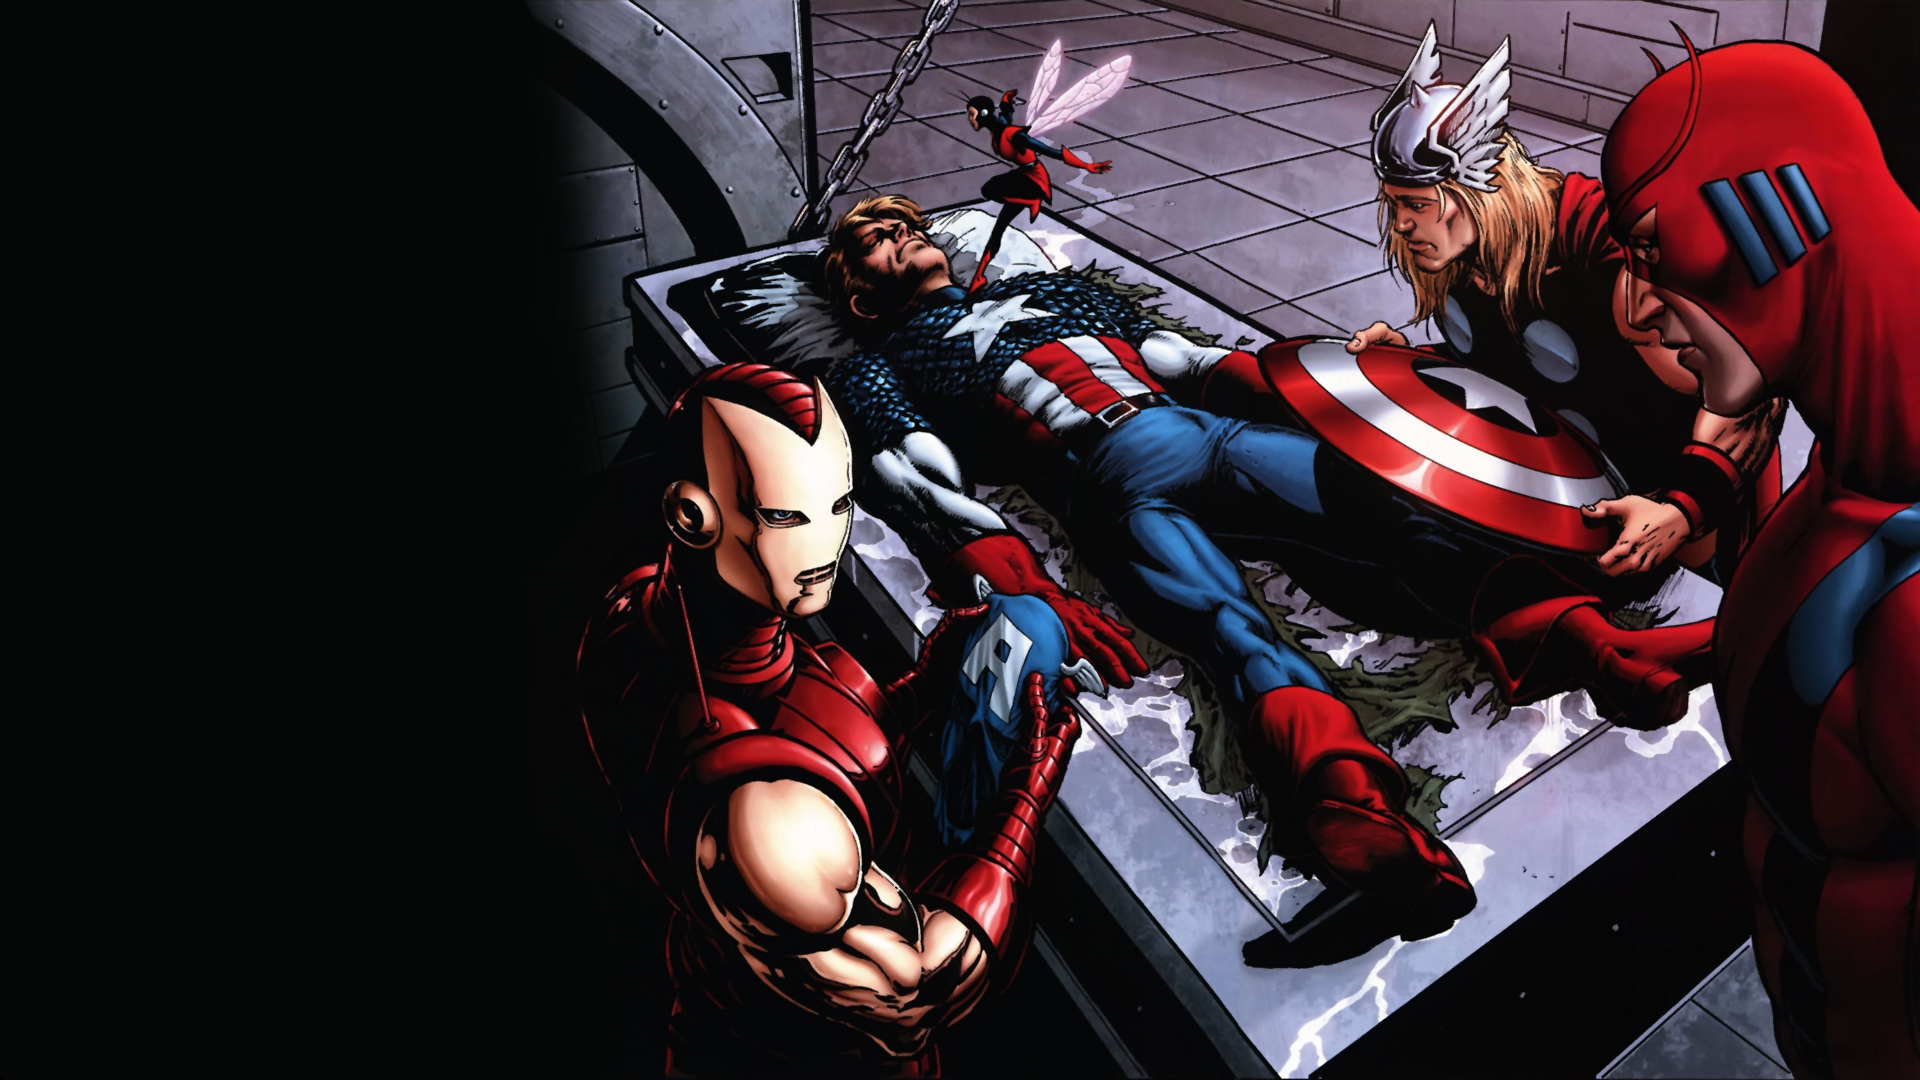 captain america being revived   captain america being revived 1920x1080